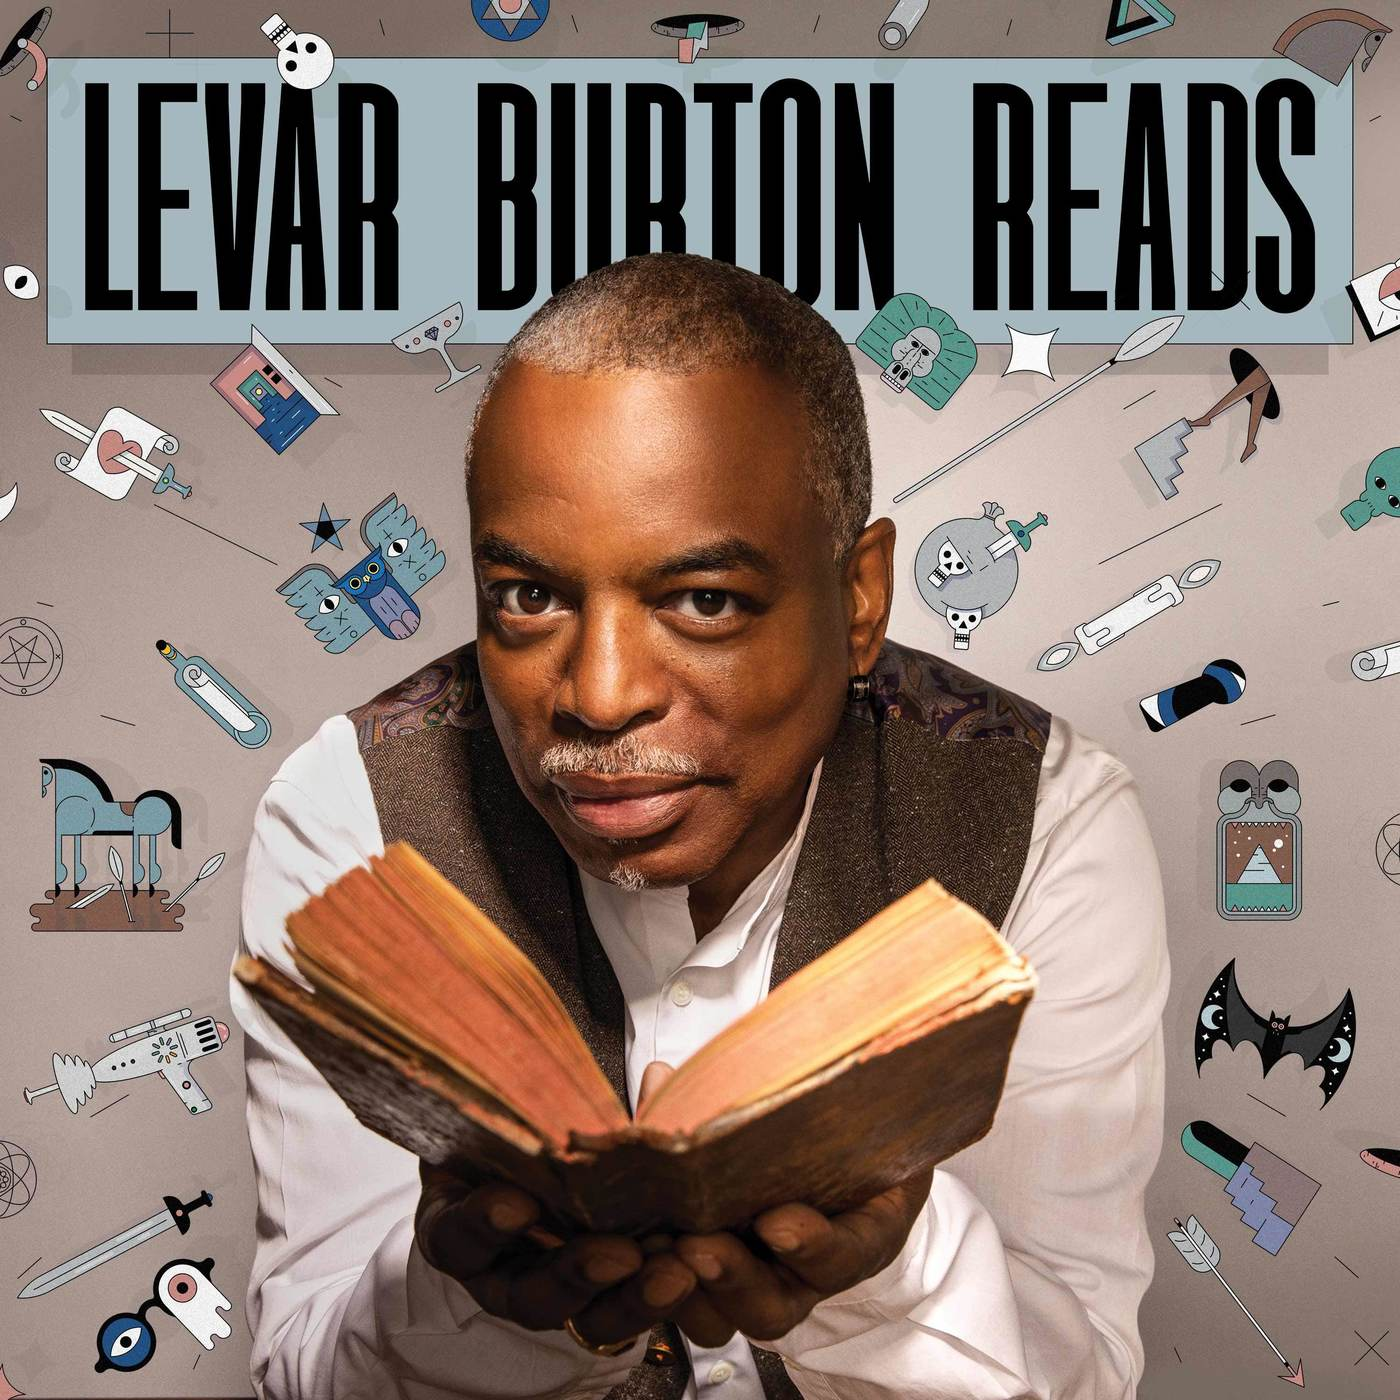 Image result for levar burton reads icon